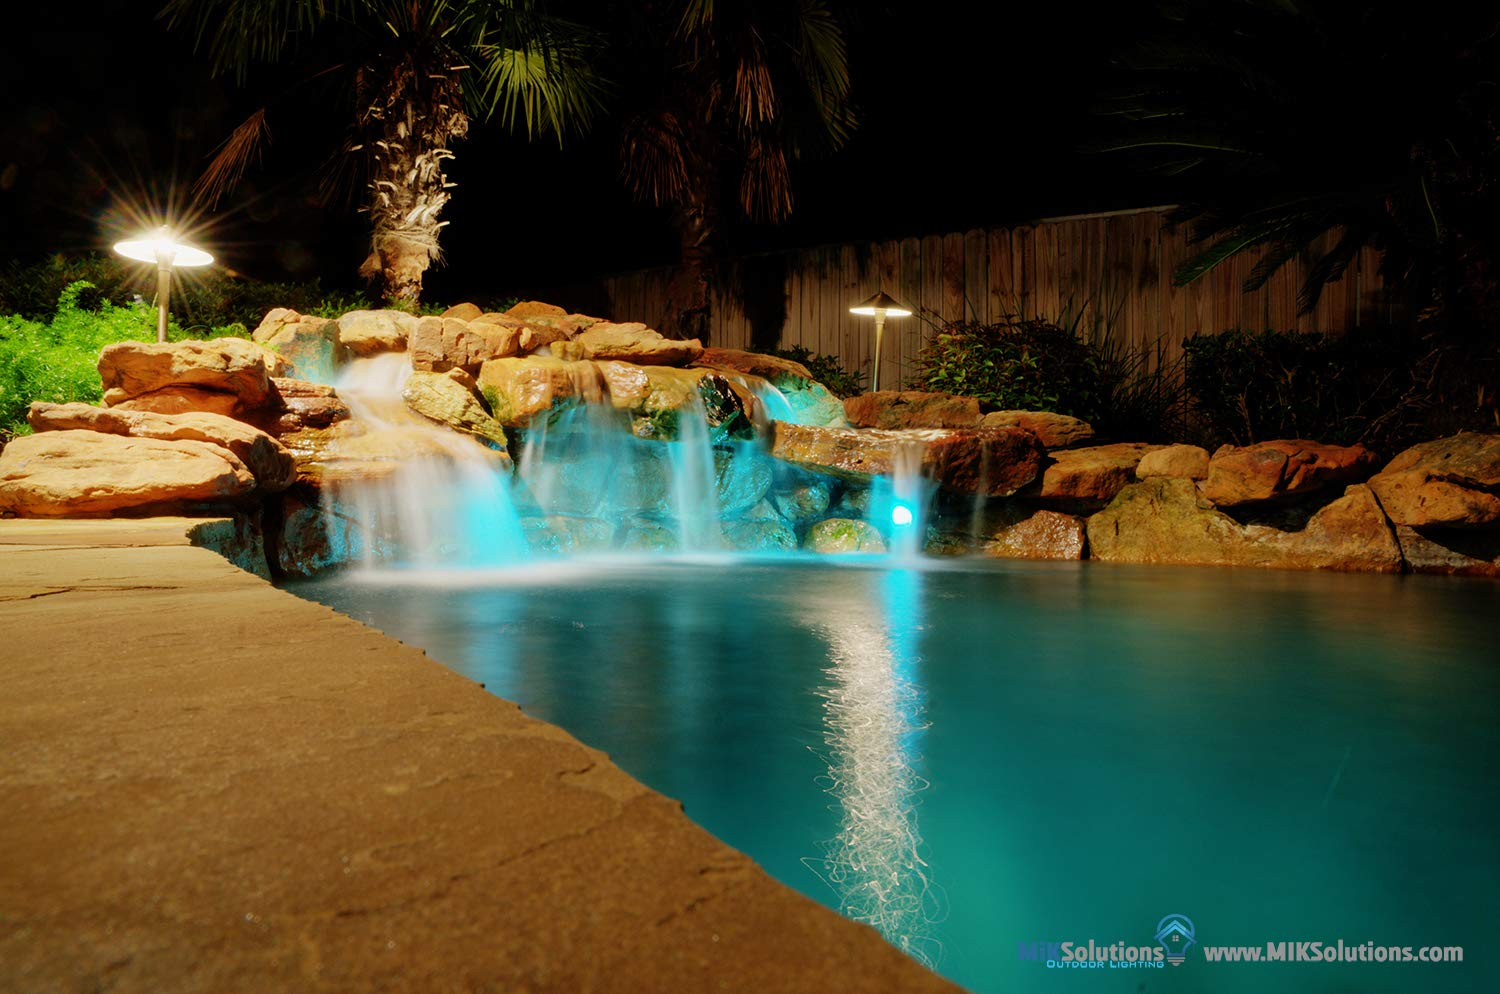 Underwater Light by MIK Solutions Solid Brass 7WMR16 LED Bulb Pond Light Submersible Waterfall Pool Fountain Light for Beautiful Bright Long Lasting Home Garden Patio Pool Area Lighting by MIK Solutions Outdoor Lighting (Image #5)